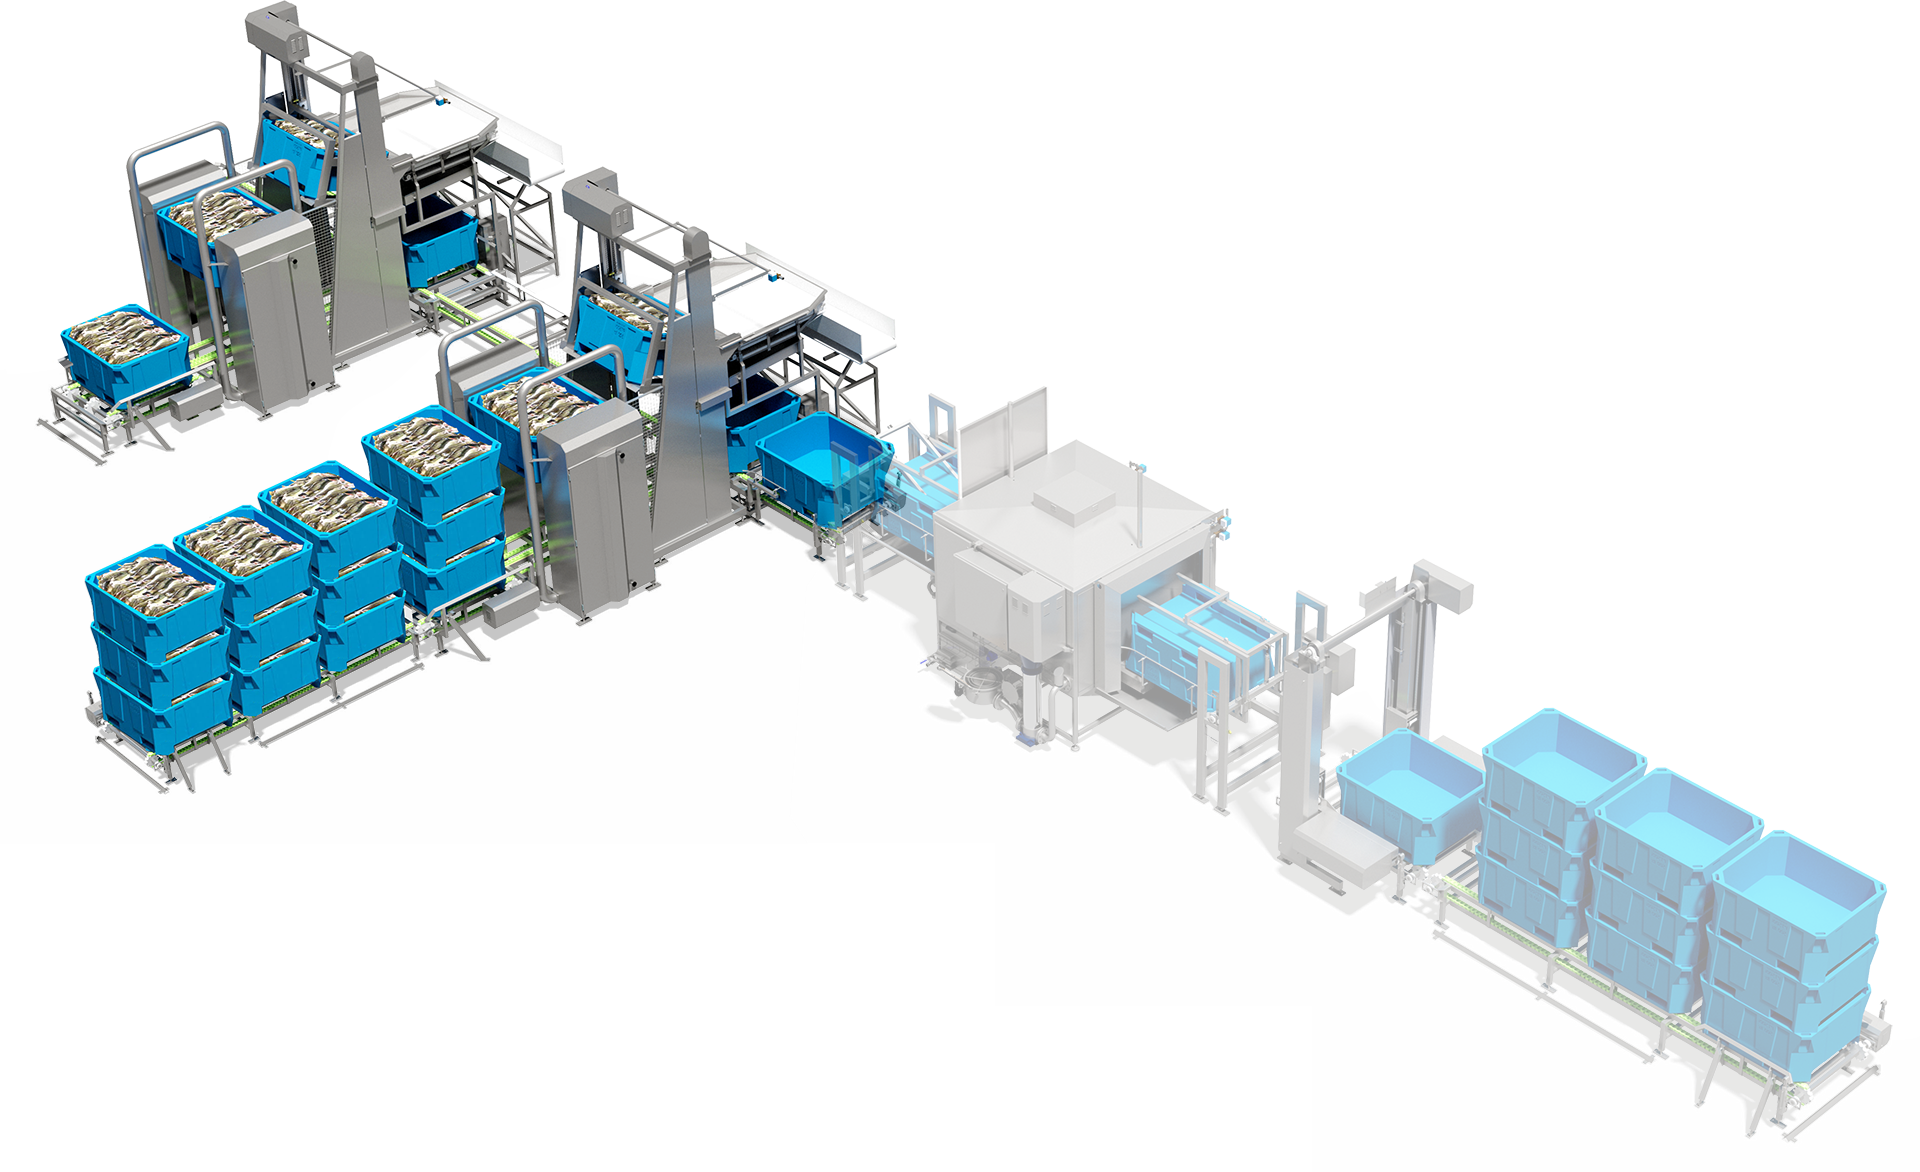 Customizable modules, standalone machines or complete systems: automatic infeed, gentle product handling, increased production flow, minimal need of forklifts.